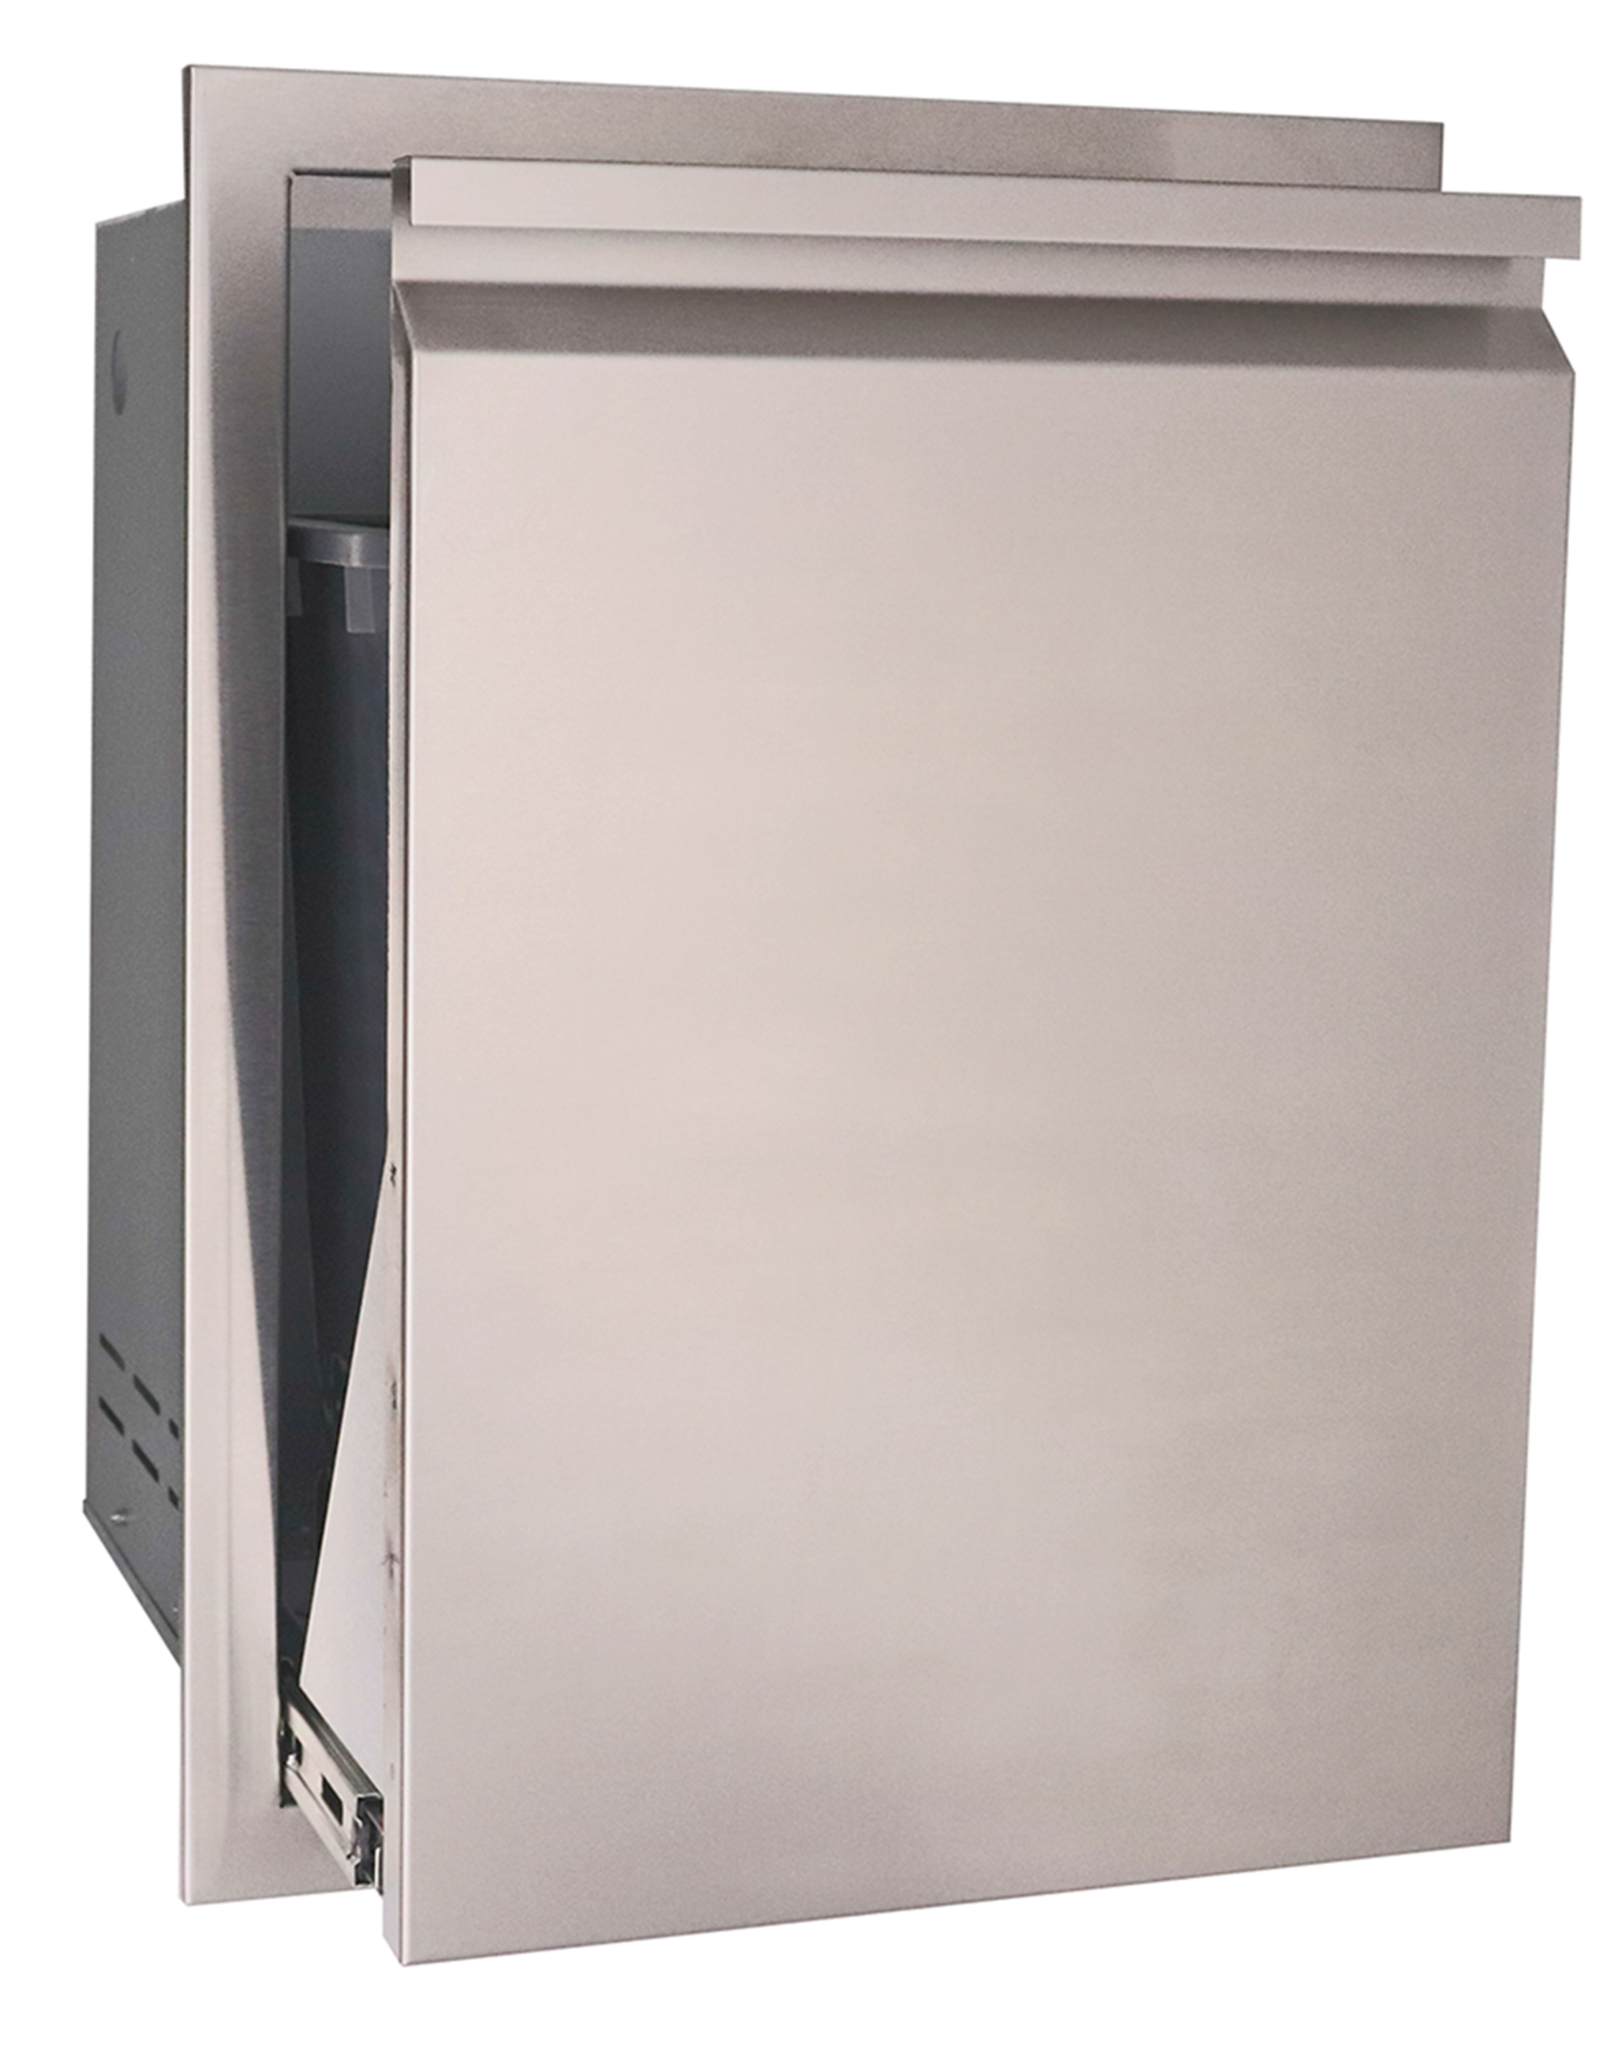 Renaissance Cooking Systems Renaissance Cooking Systems The Valiant Series Single Trash Can - VTD1